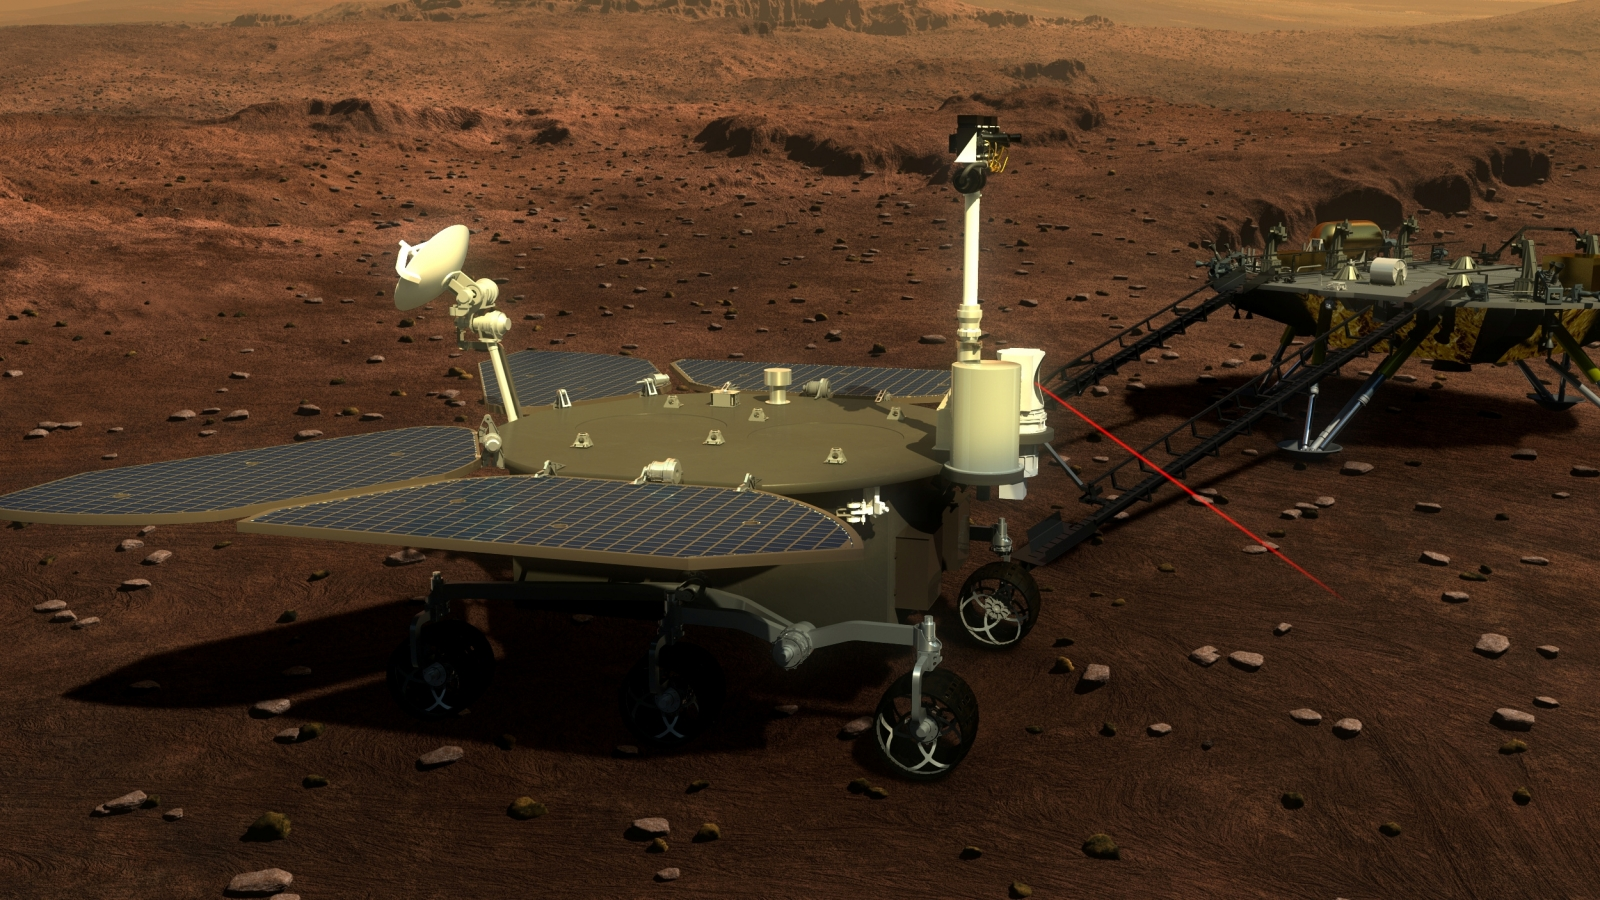 2020 China Mars Mission: China unveils probe and rover details